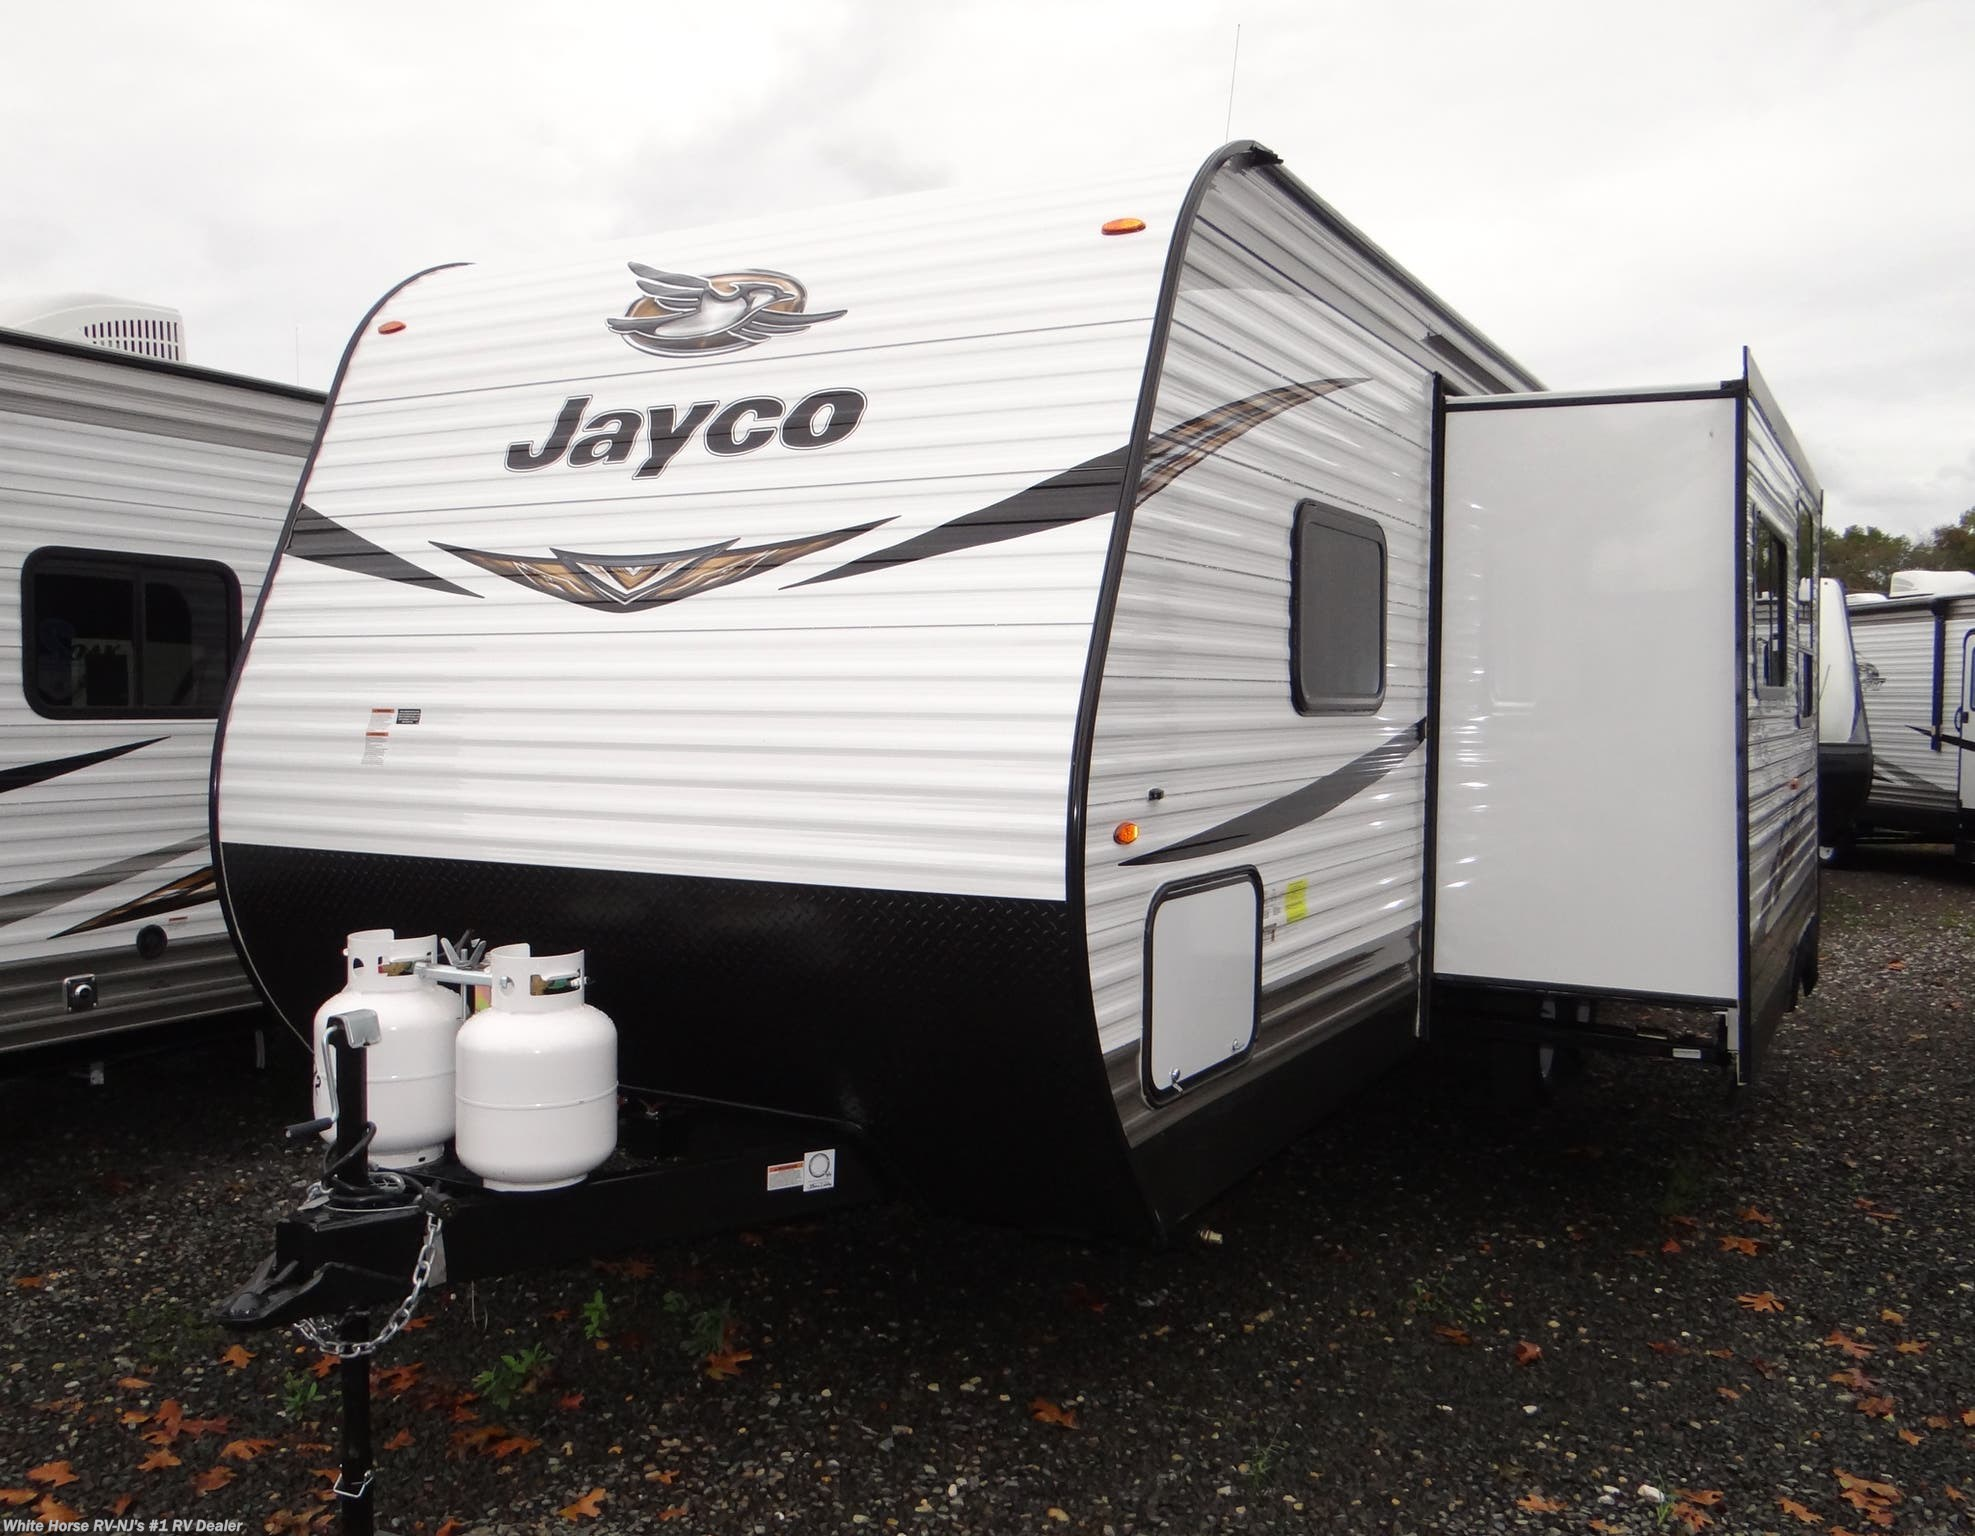 Double Bunks For Sale 2019 Jayco Rv Jay Flight Slx 267bhsw 2 Bdrm Slide W Double Bed Bunks For Sale In Williamstown Nj 08094 J12196